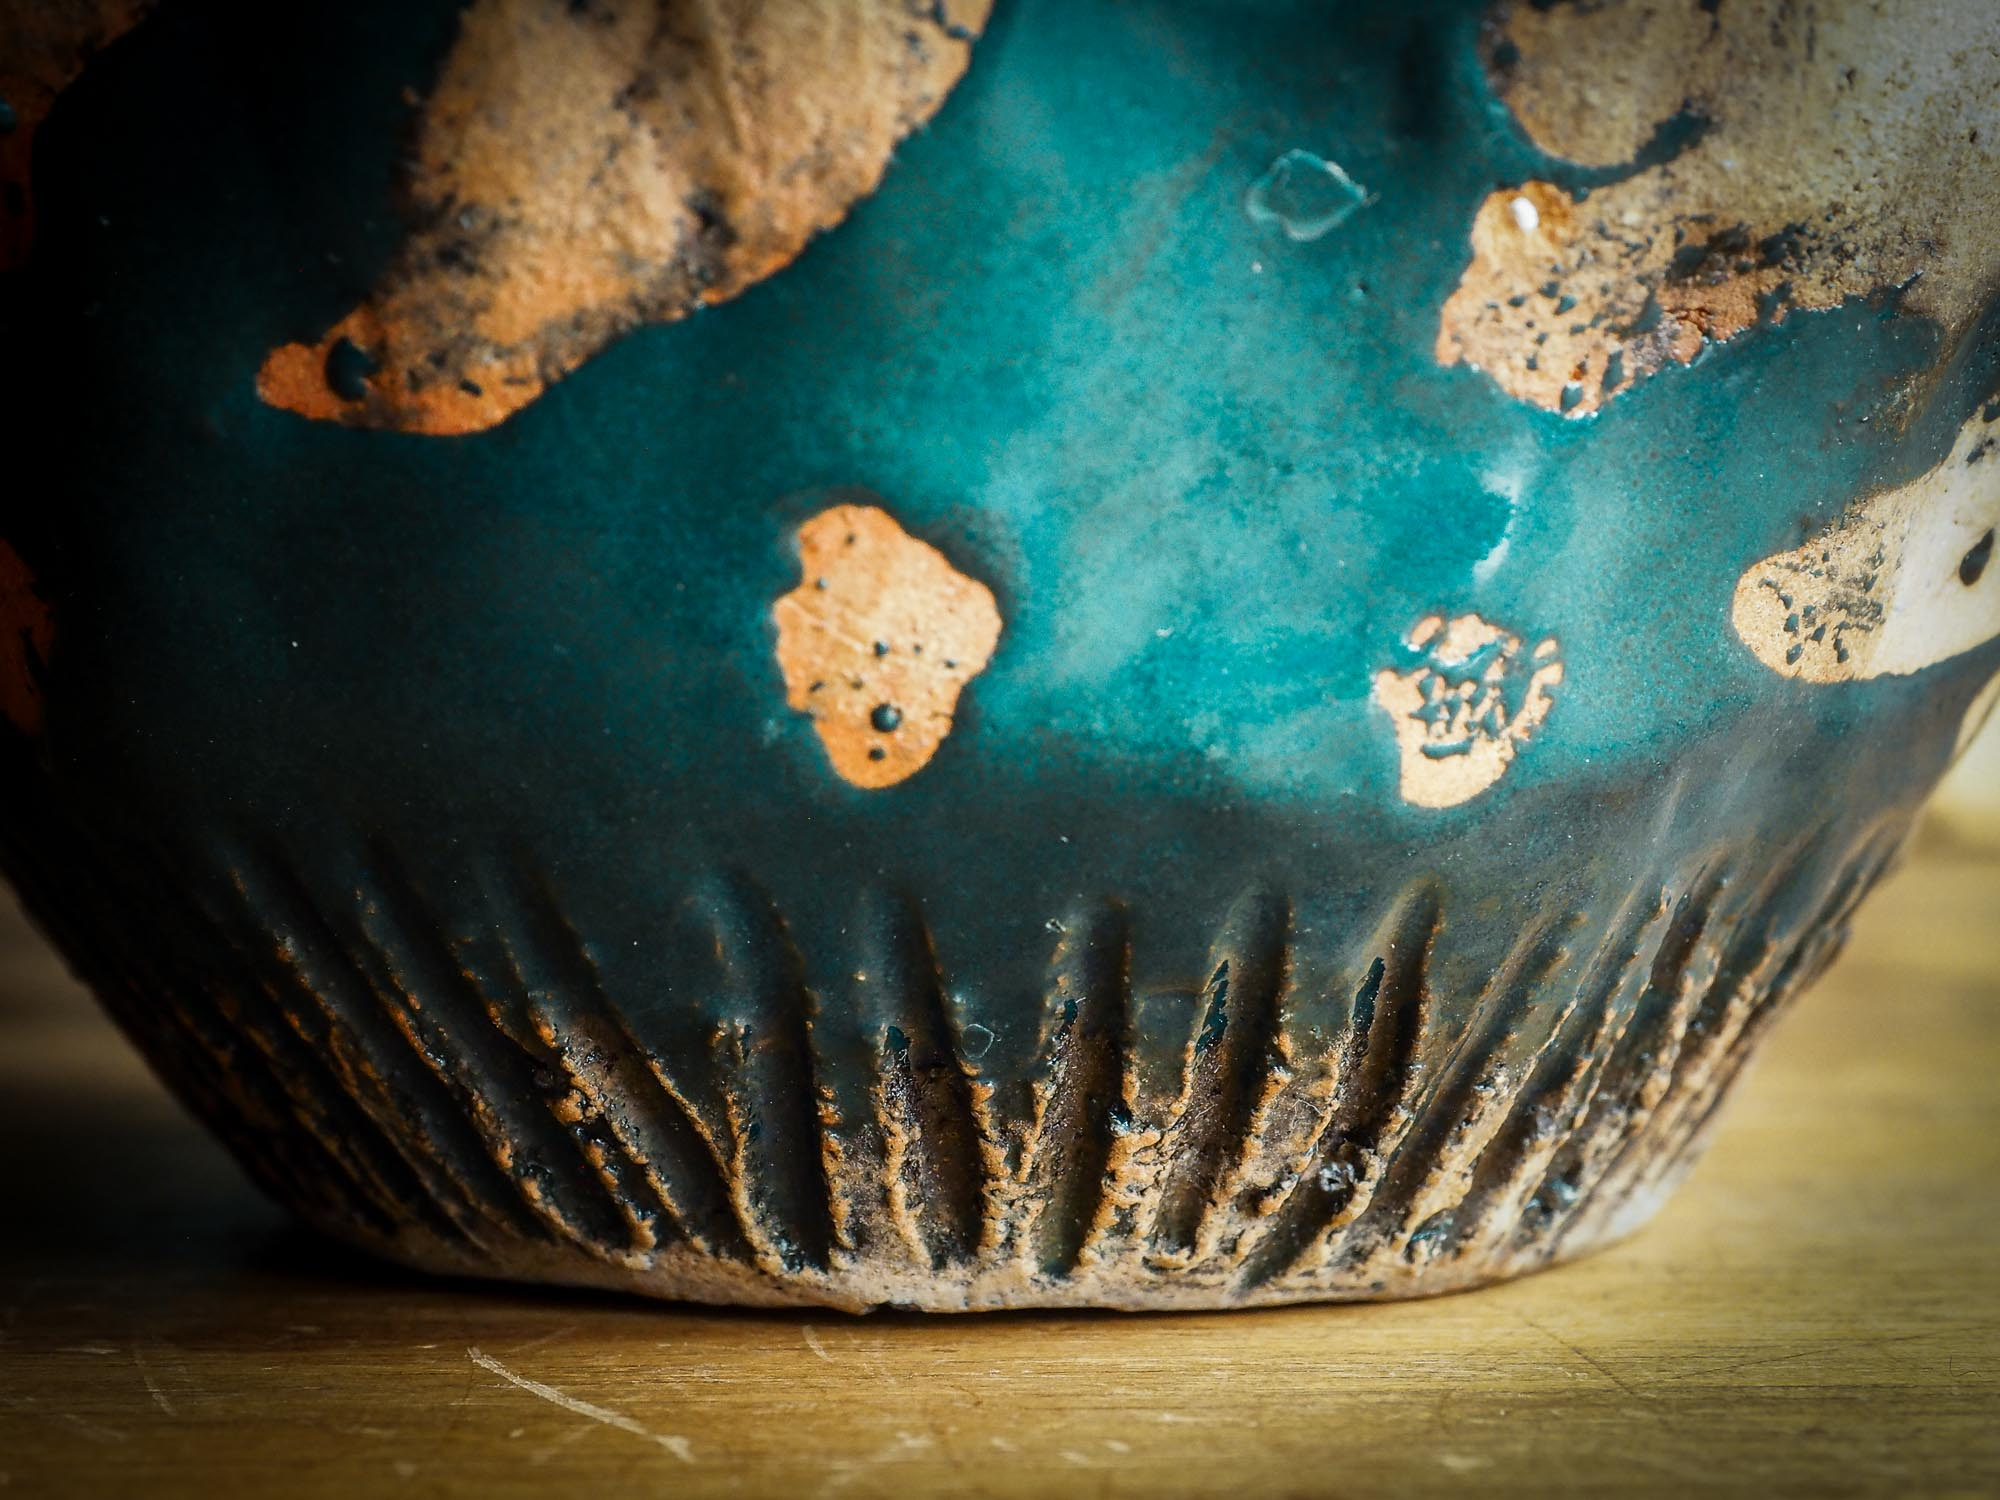 An original Idania Salcido Danita Art pinched ceramic free turquoise birds art bowl. Handmade from locally foraged clay, this glazed ceramics one of a kind artwork is perfect for any kitchen plate and bowls unique collection. food safe hand wash only bowl. Blue turquoise glaze contrasts with raw clay colored flying handmade birds.